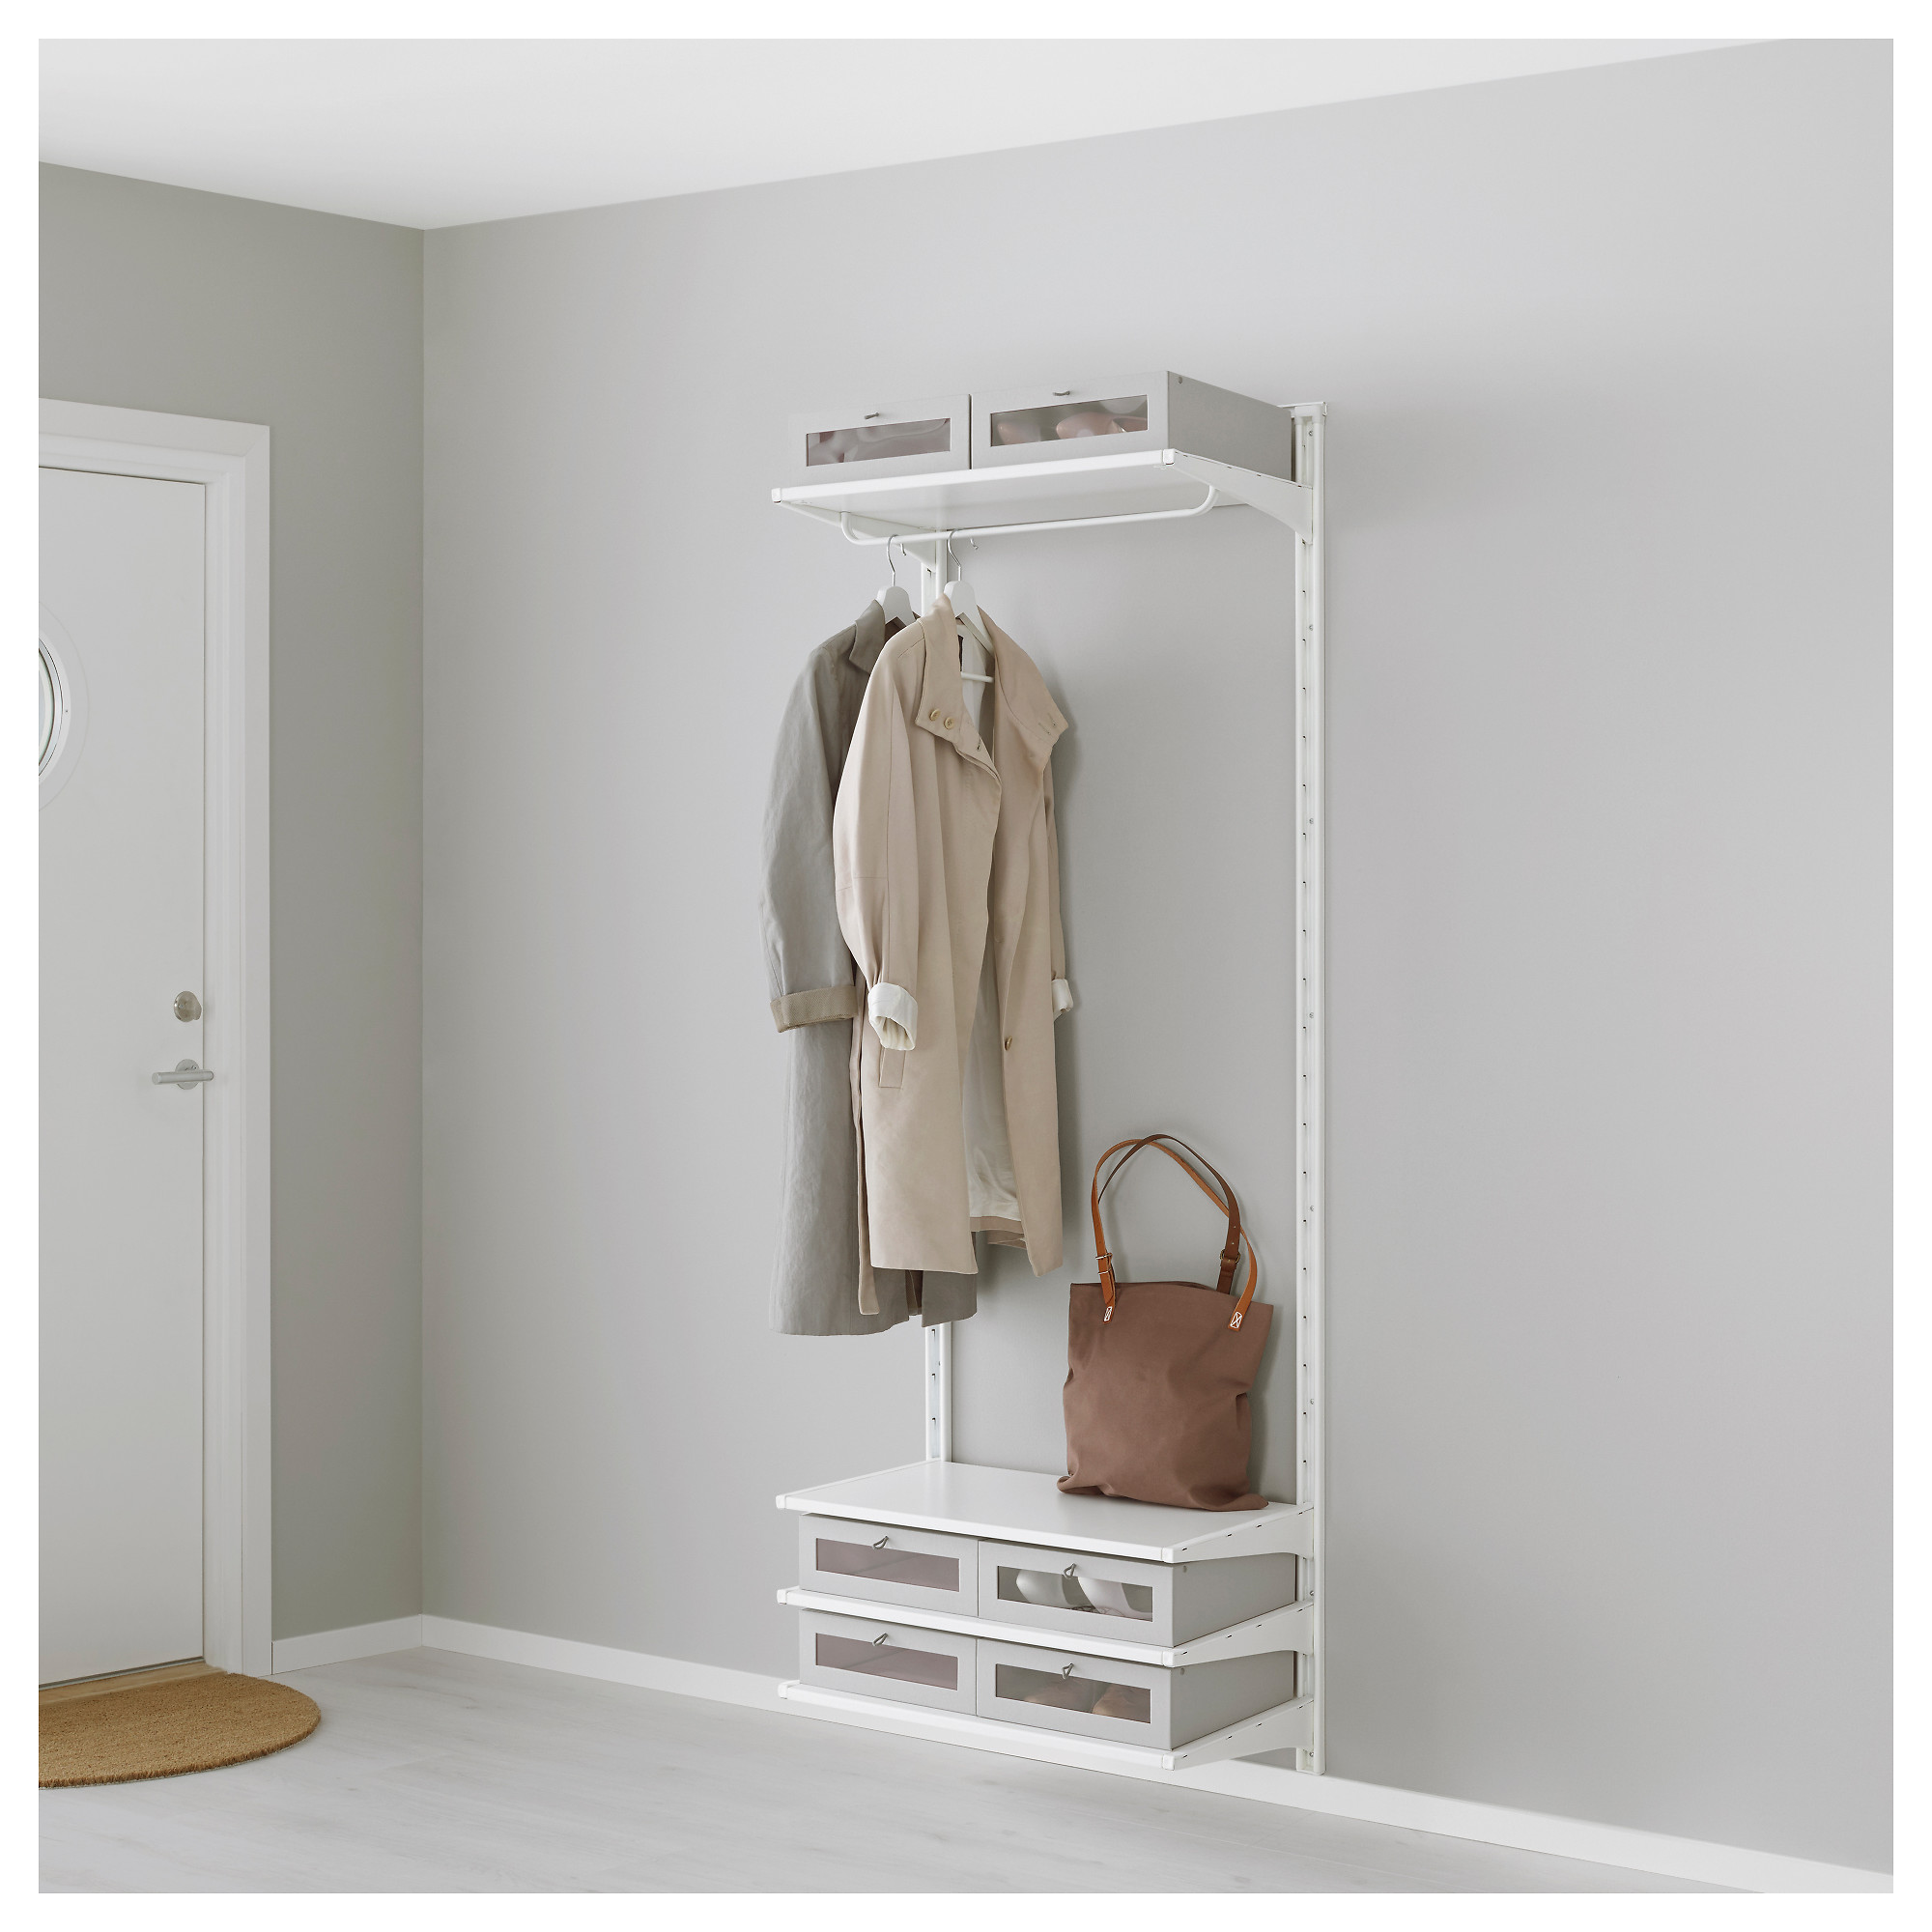 algot wall uprightshelvesrod white width 26 depth 16 algot white wall mounted storage solution